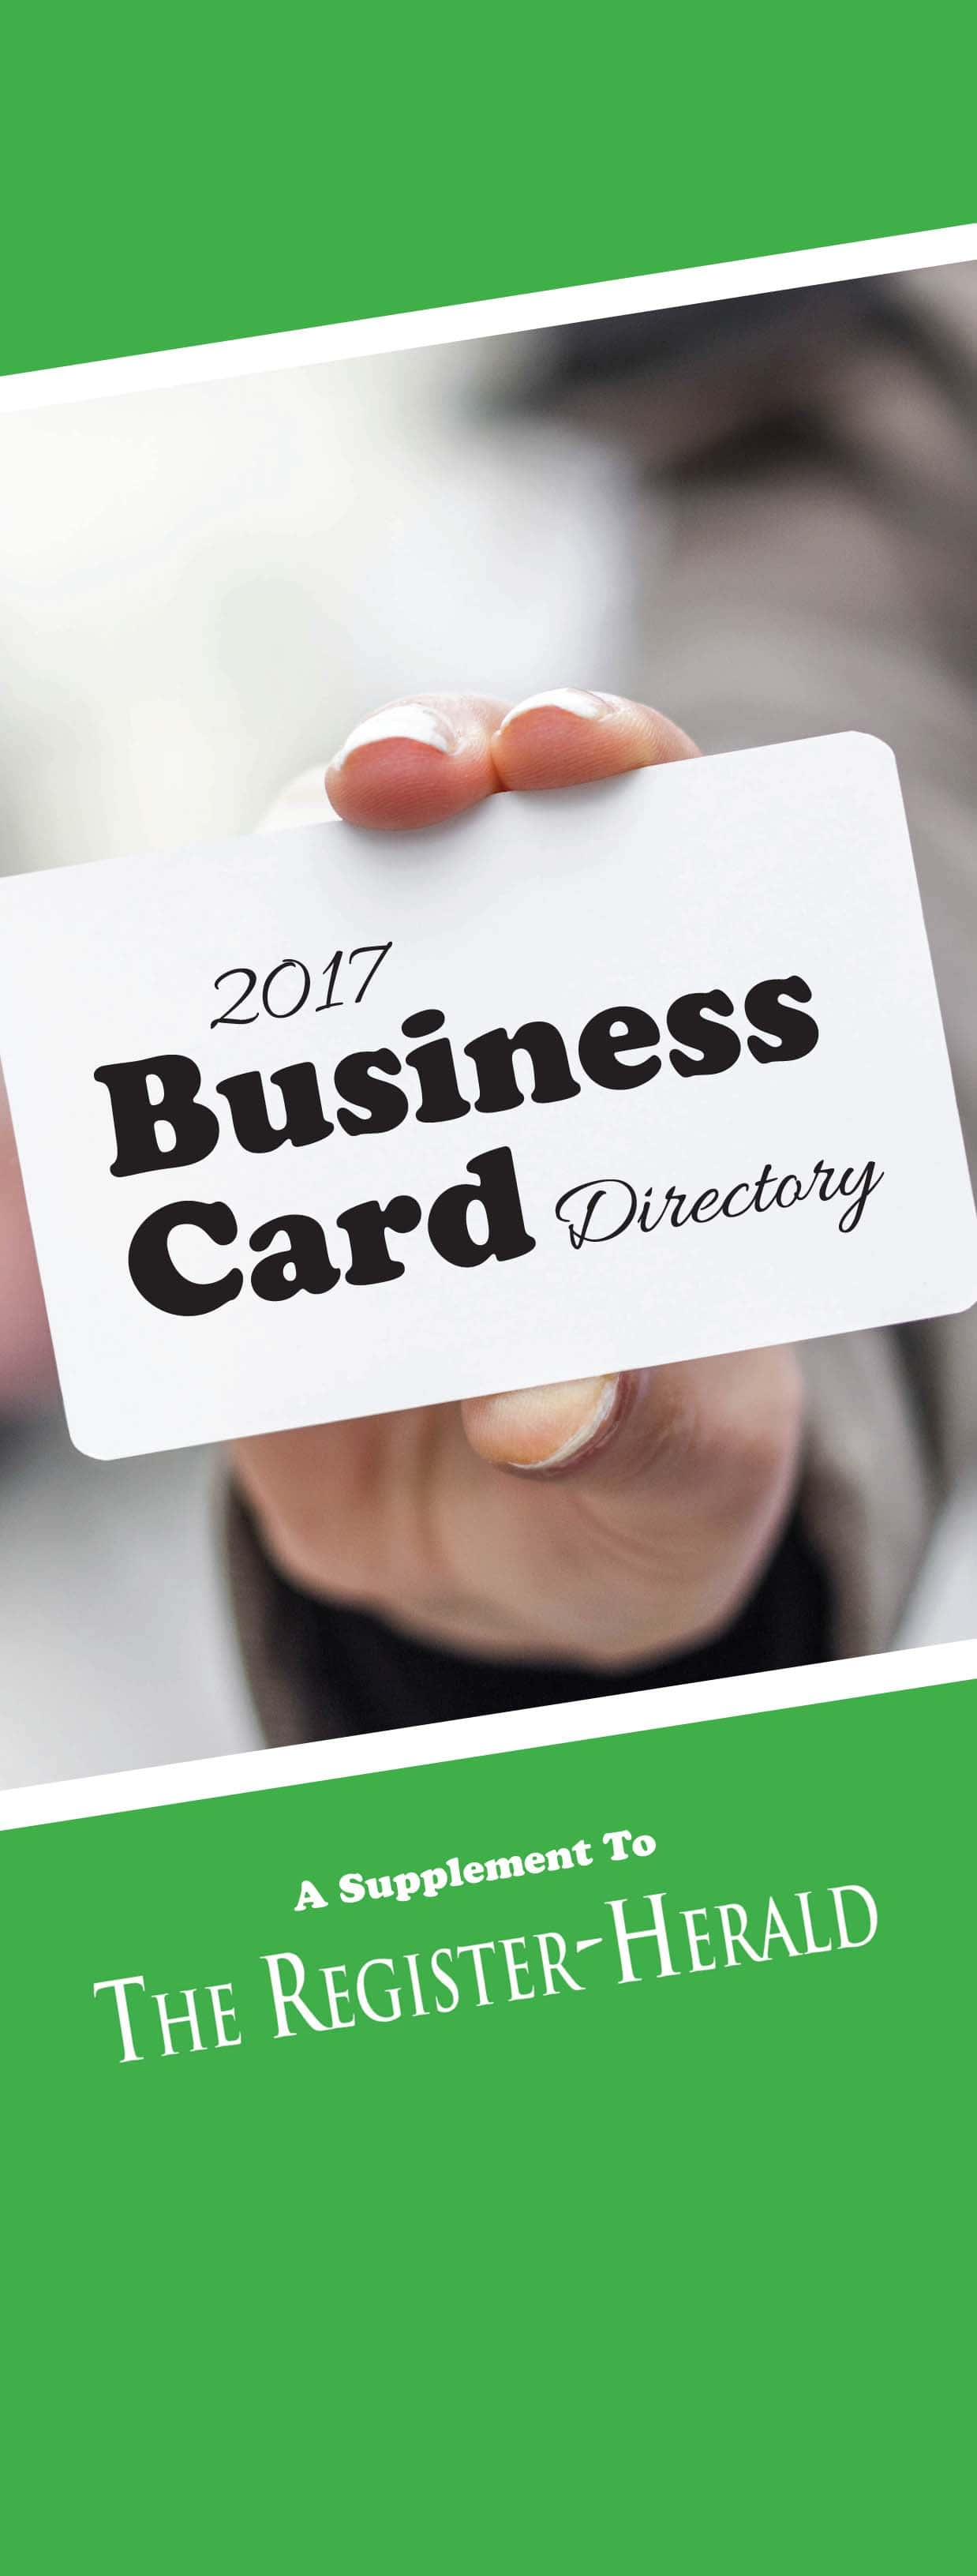 Business card directory 2017 register herald business card directory 2017 colourmoves